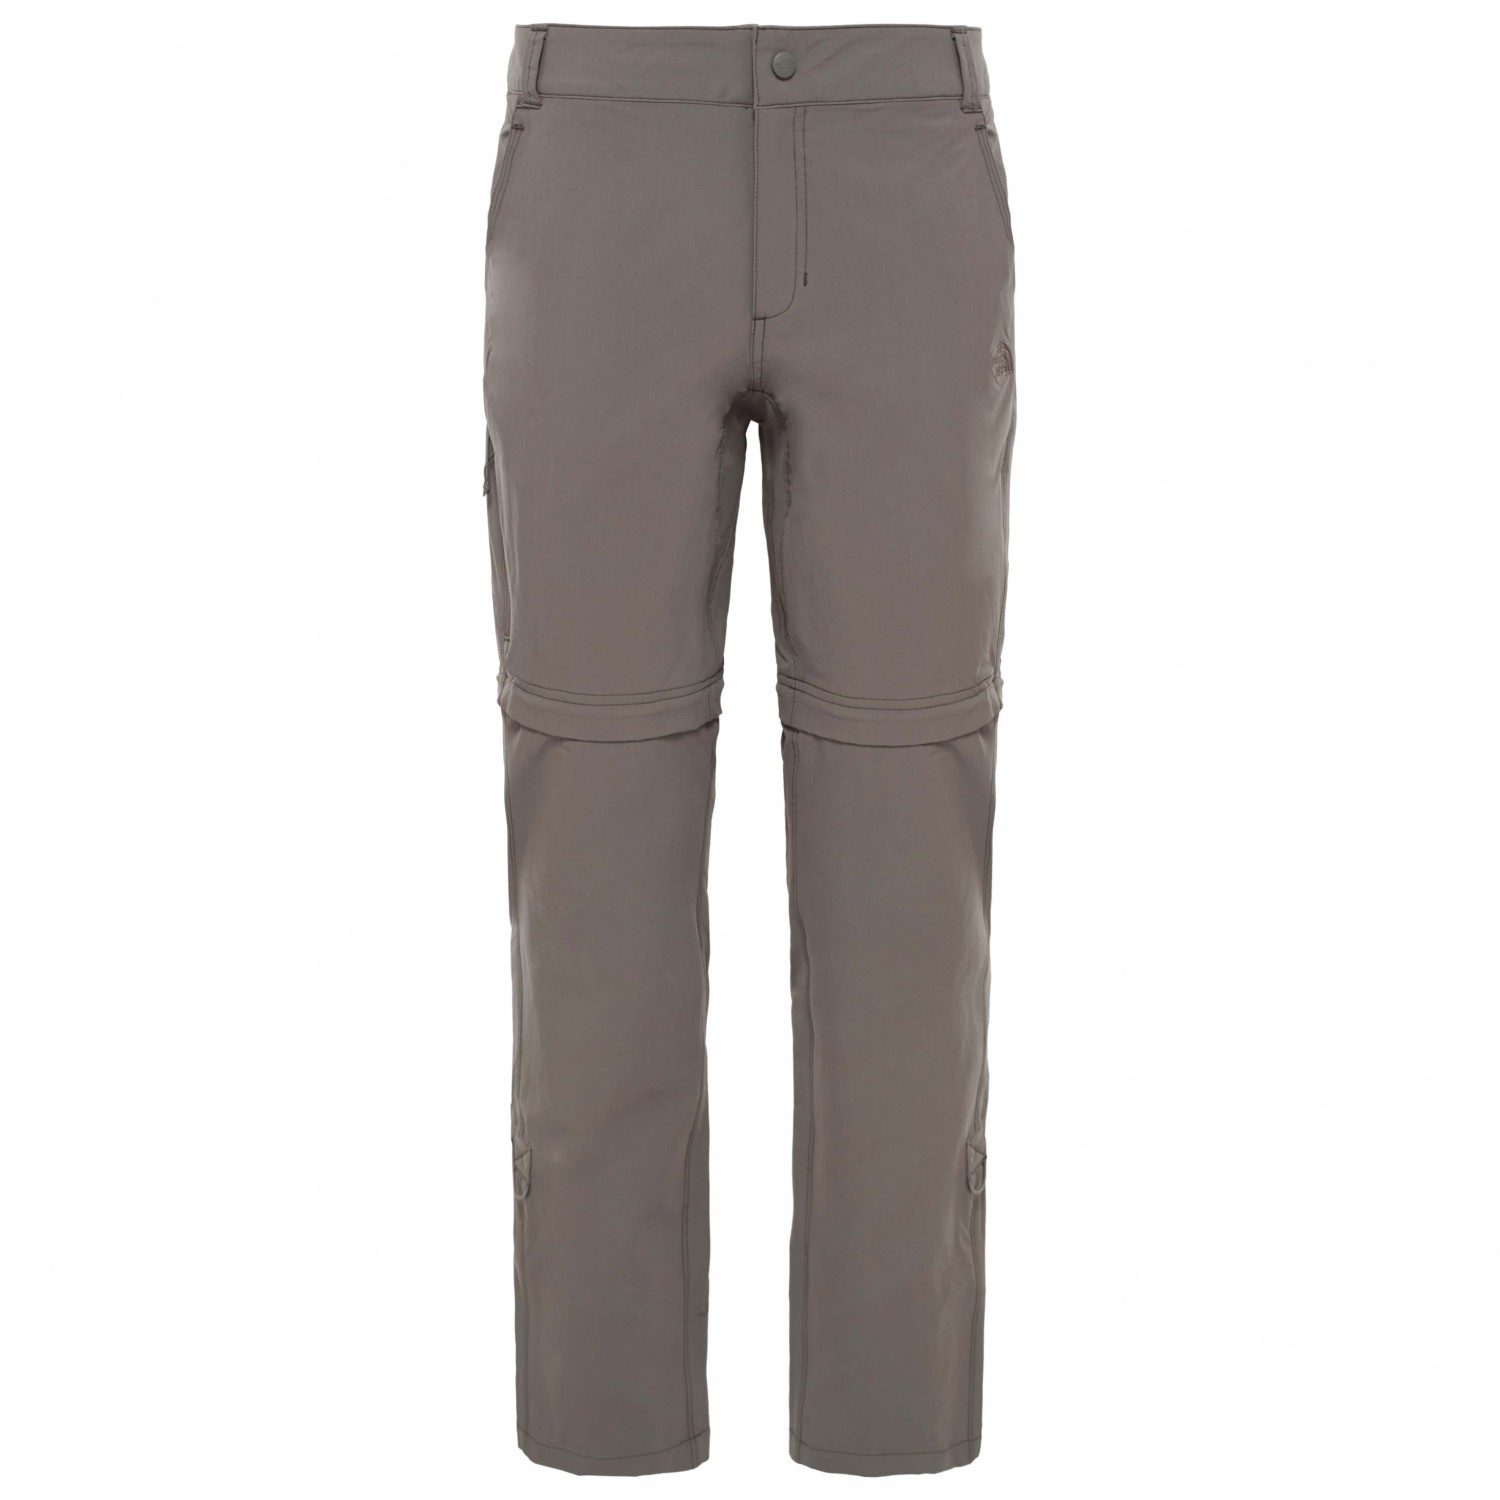 The North Face Mujer Desmontable Pantalones Cargo Talla 6